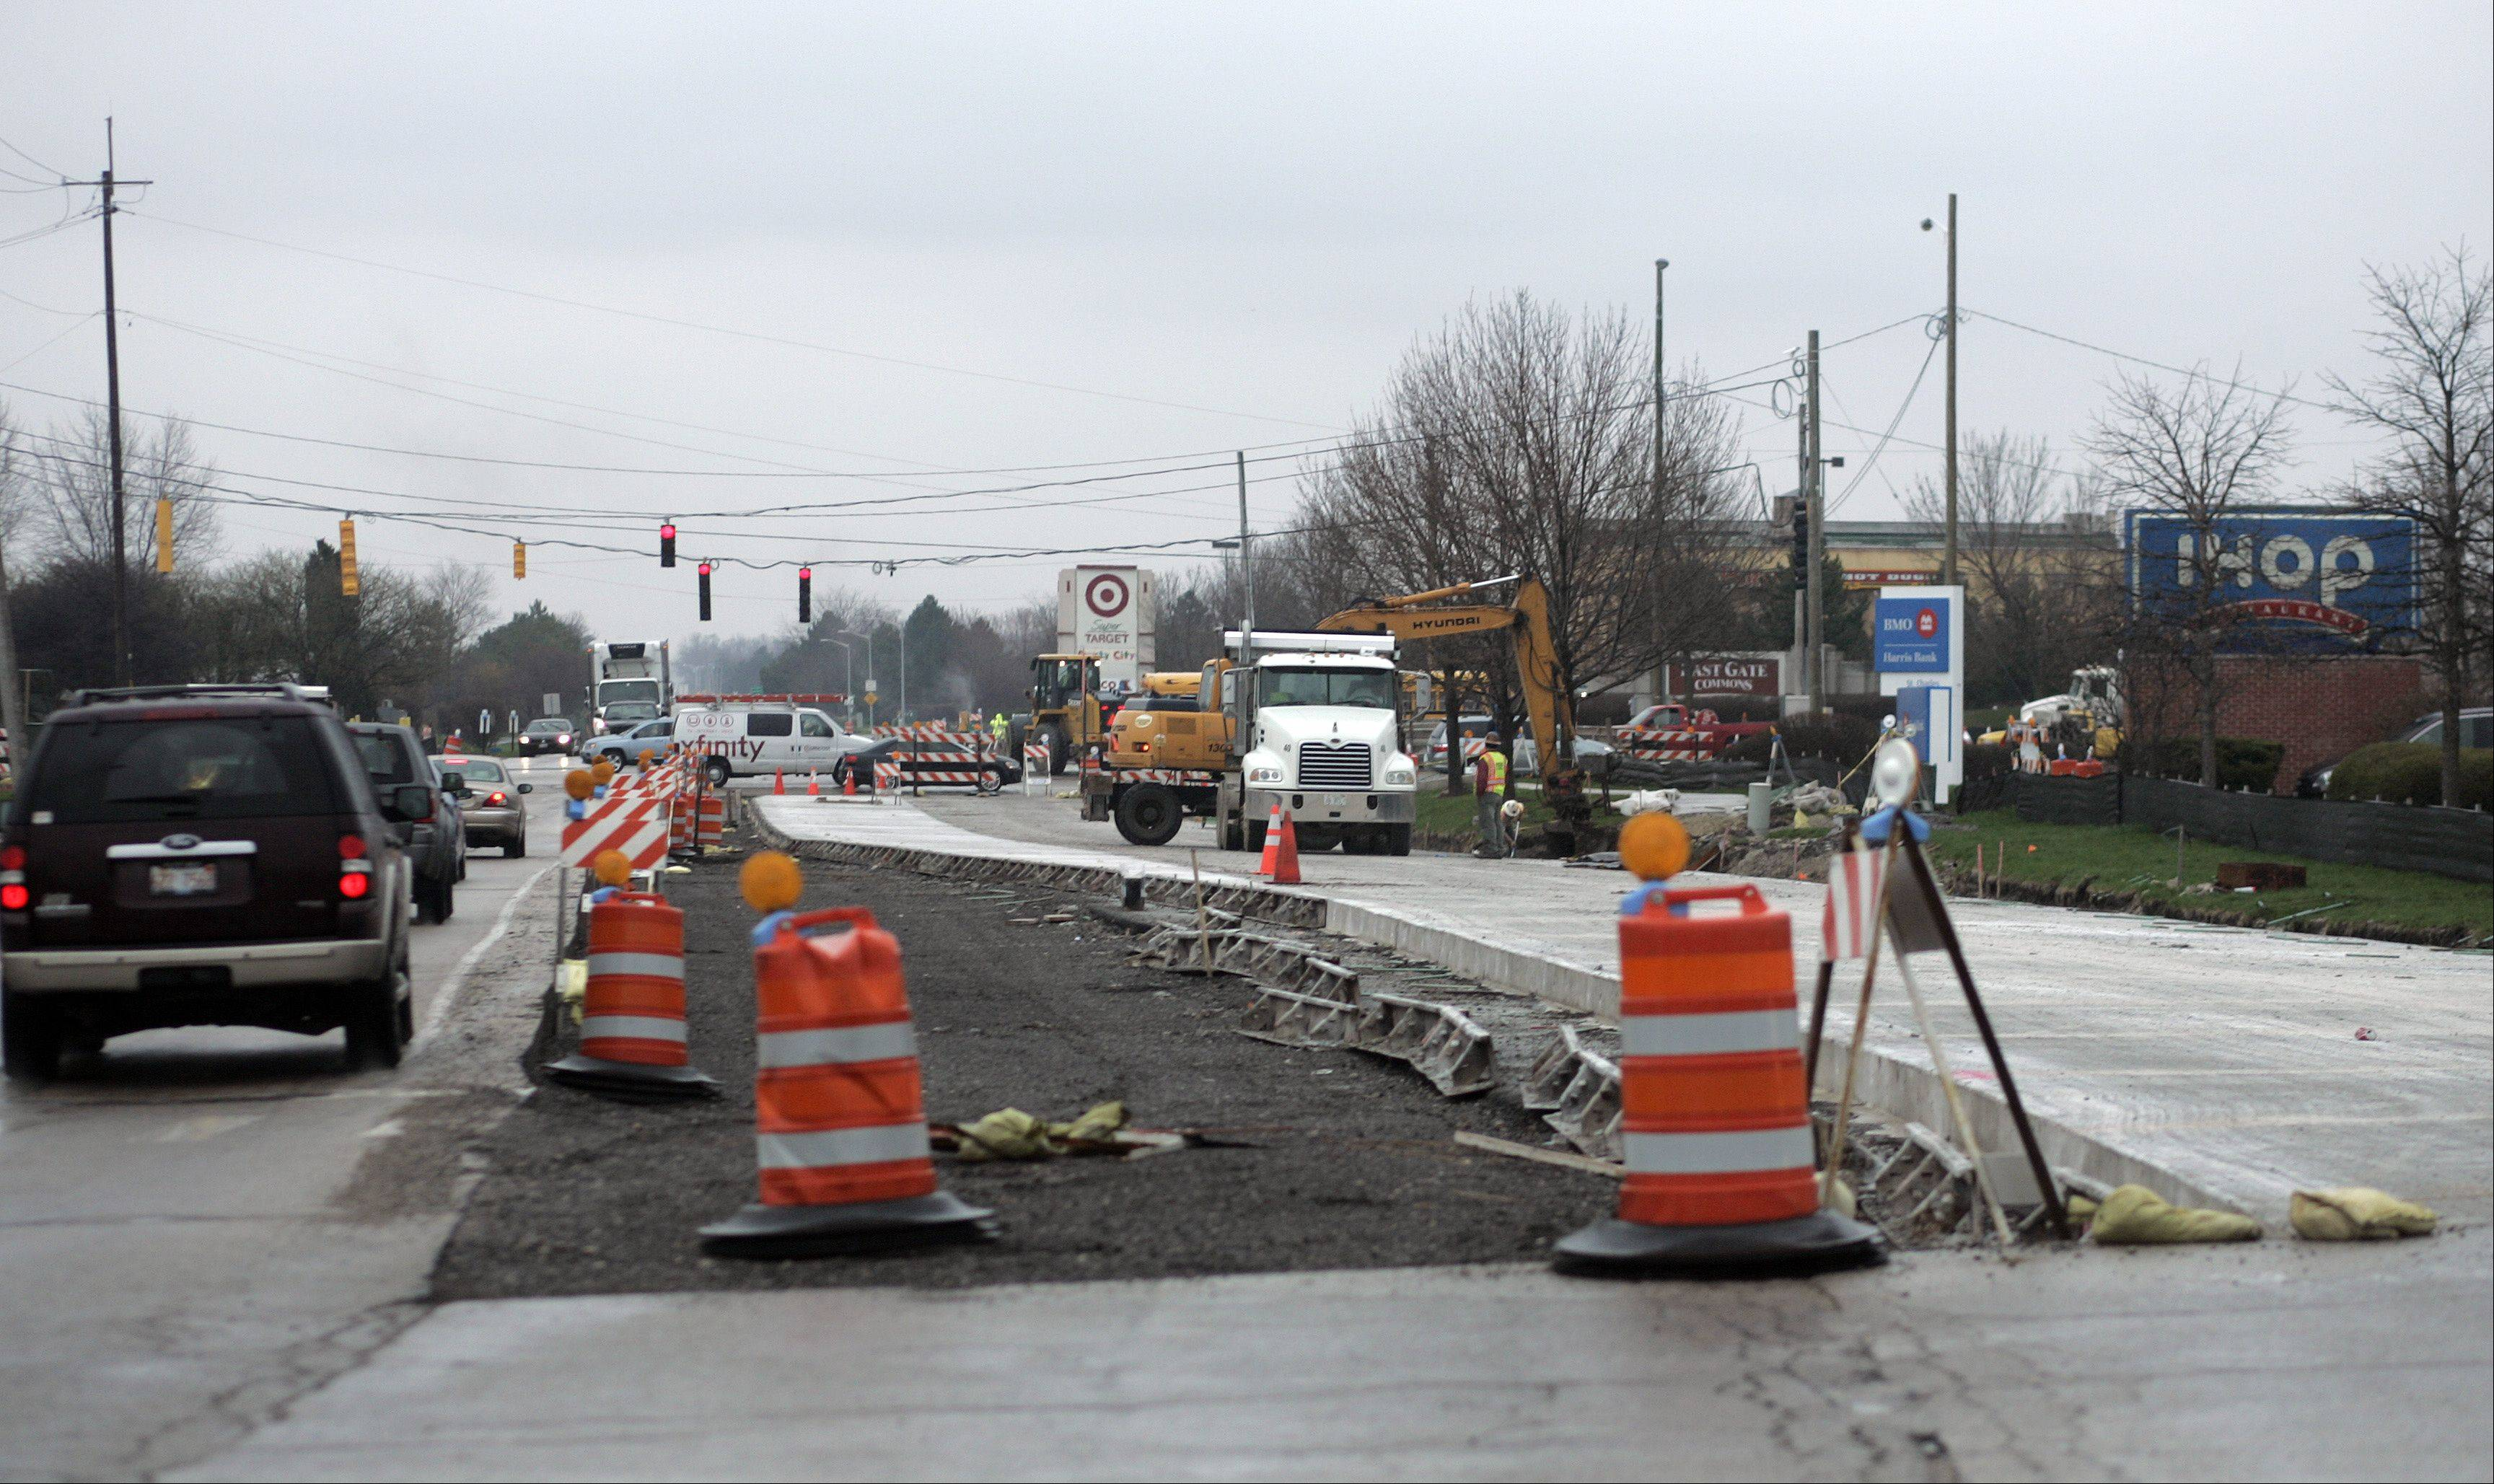 Construction continues in St. Charles including along Smith Road on the city's far east side.